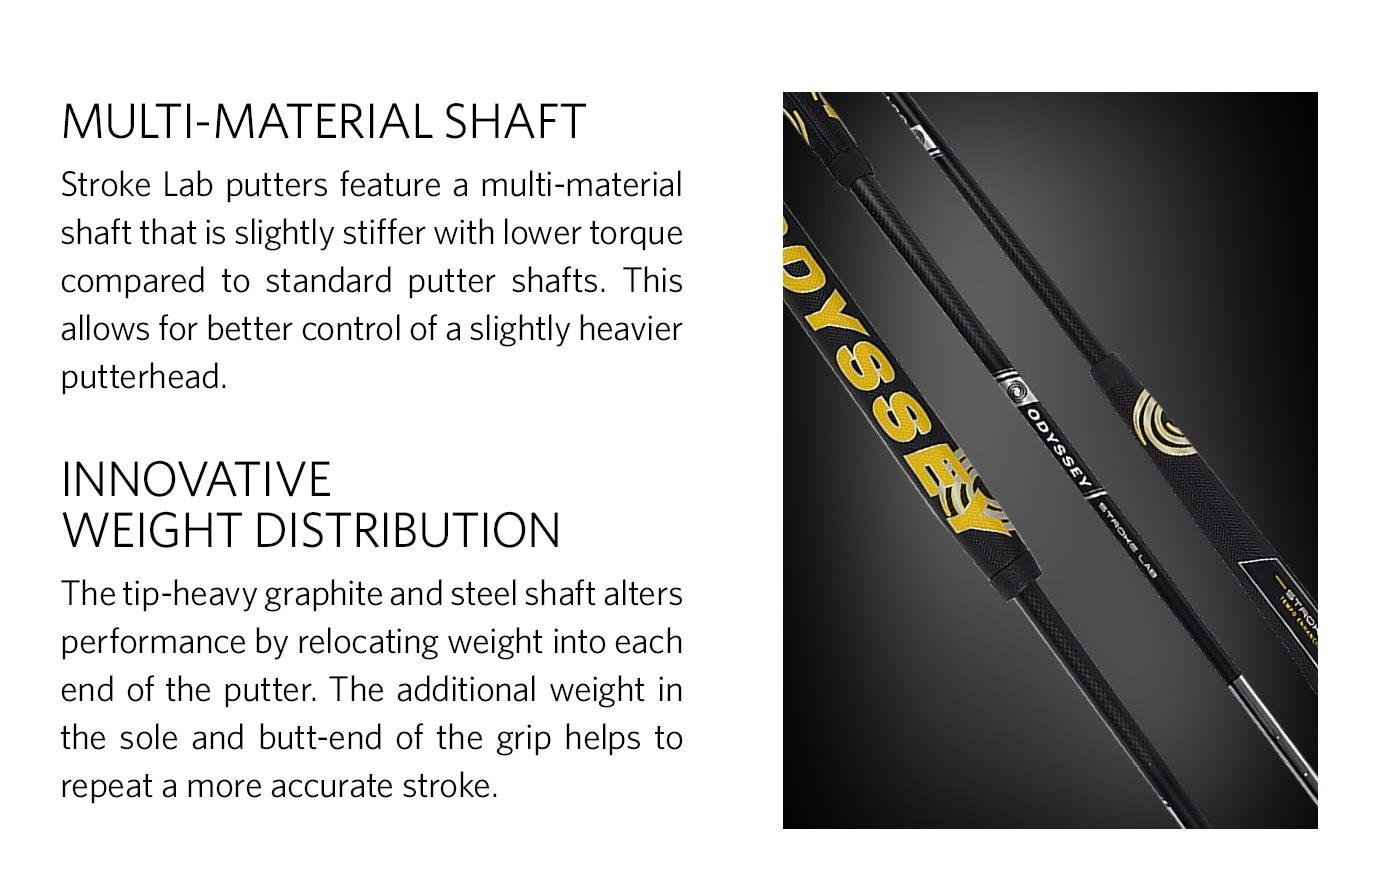 MULTI-MATERIAL SHAFT - Stroke Lab putters feature a multi-material shaft that is slightly stiffer with lower torque compared to standard putter shafts. This allows for better control of a slightly heavier putterhead.<br /> INNOVATIVE WEIGHT DISTRIBUTION - The tip-heavy graphite and steel shaft alters performance by relocating weight into each end of the putter. The additional weight in the sole and butt-end of the grip helps to repeat a more accurate stroke.